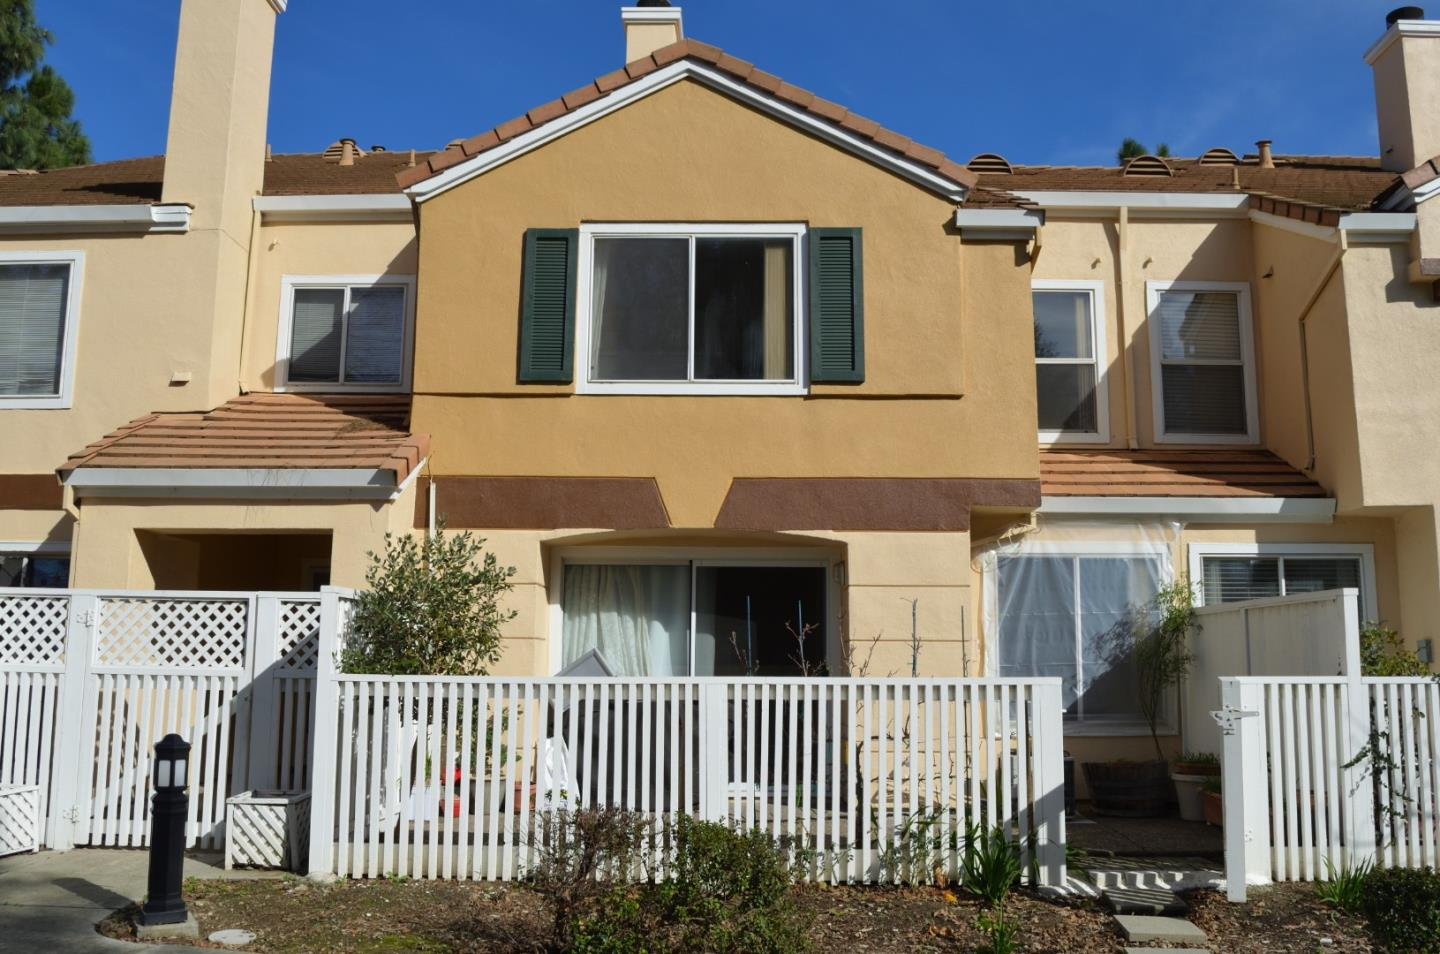 Image for 6909 Rodling Drive D, <br>San Jose 95138